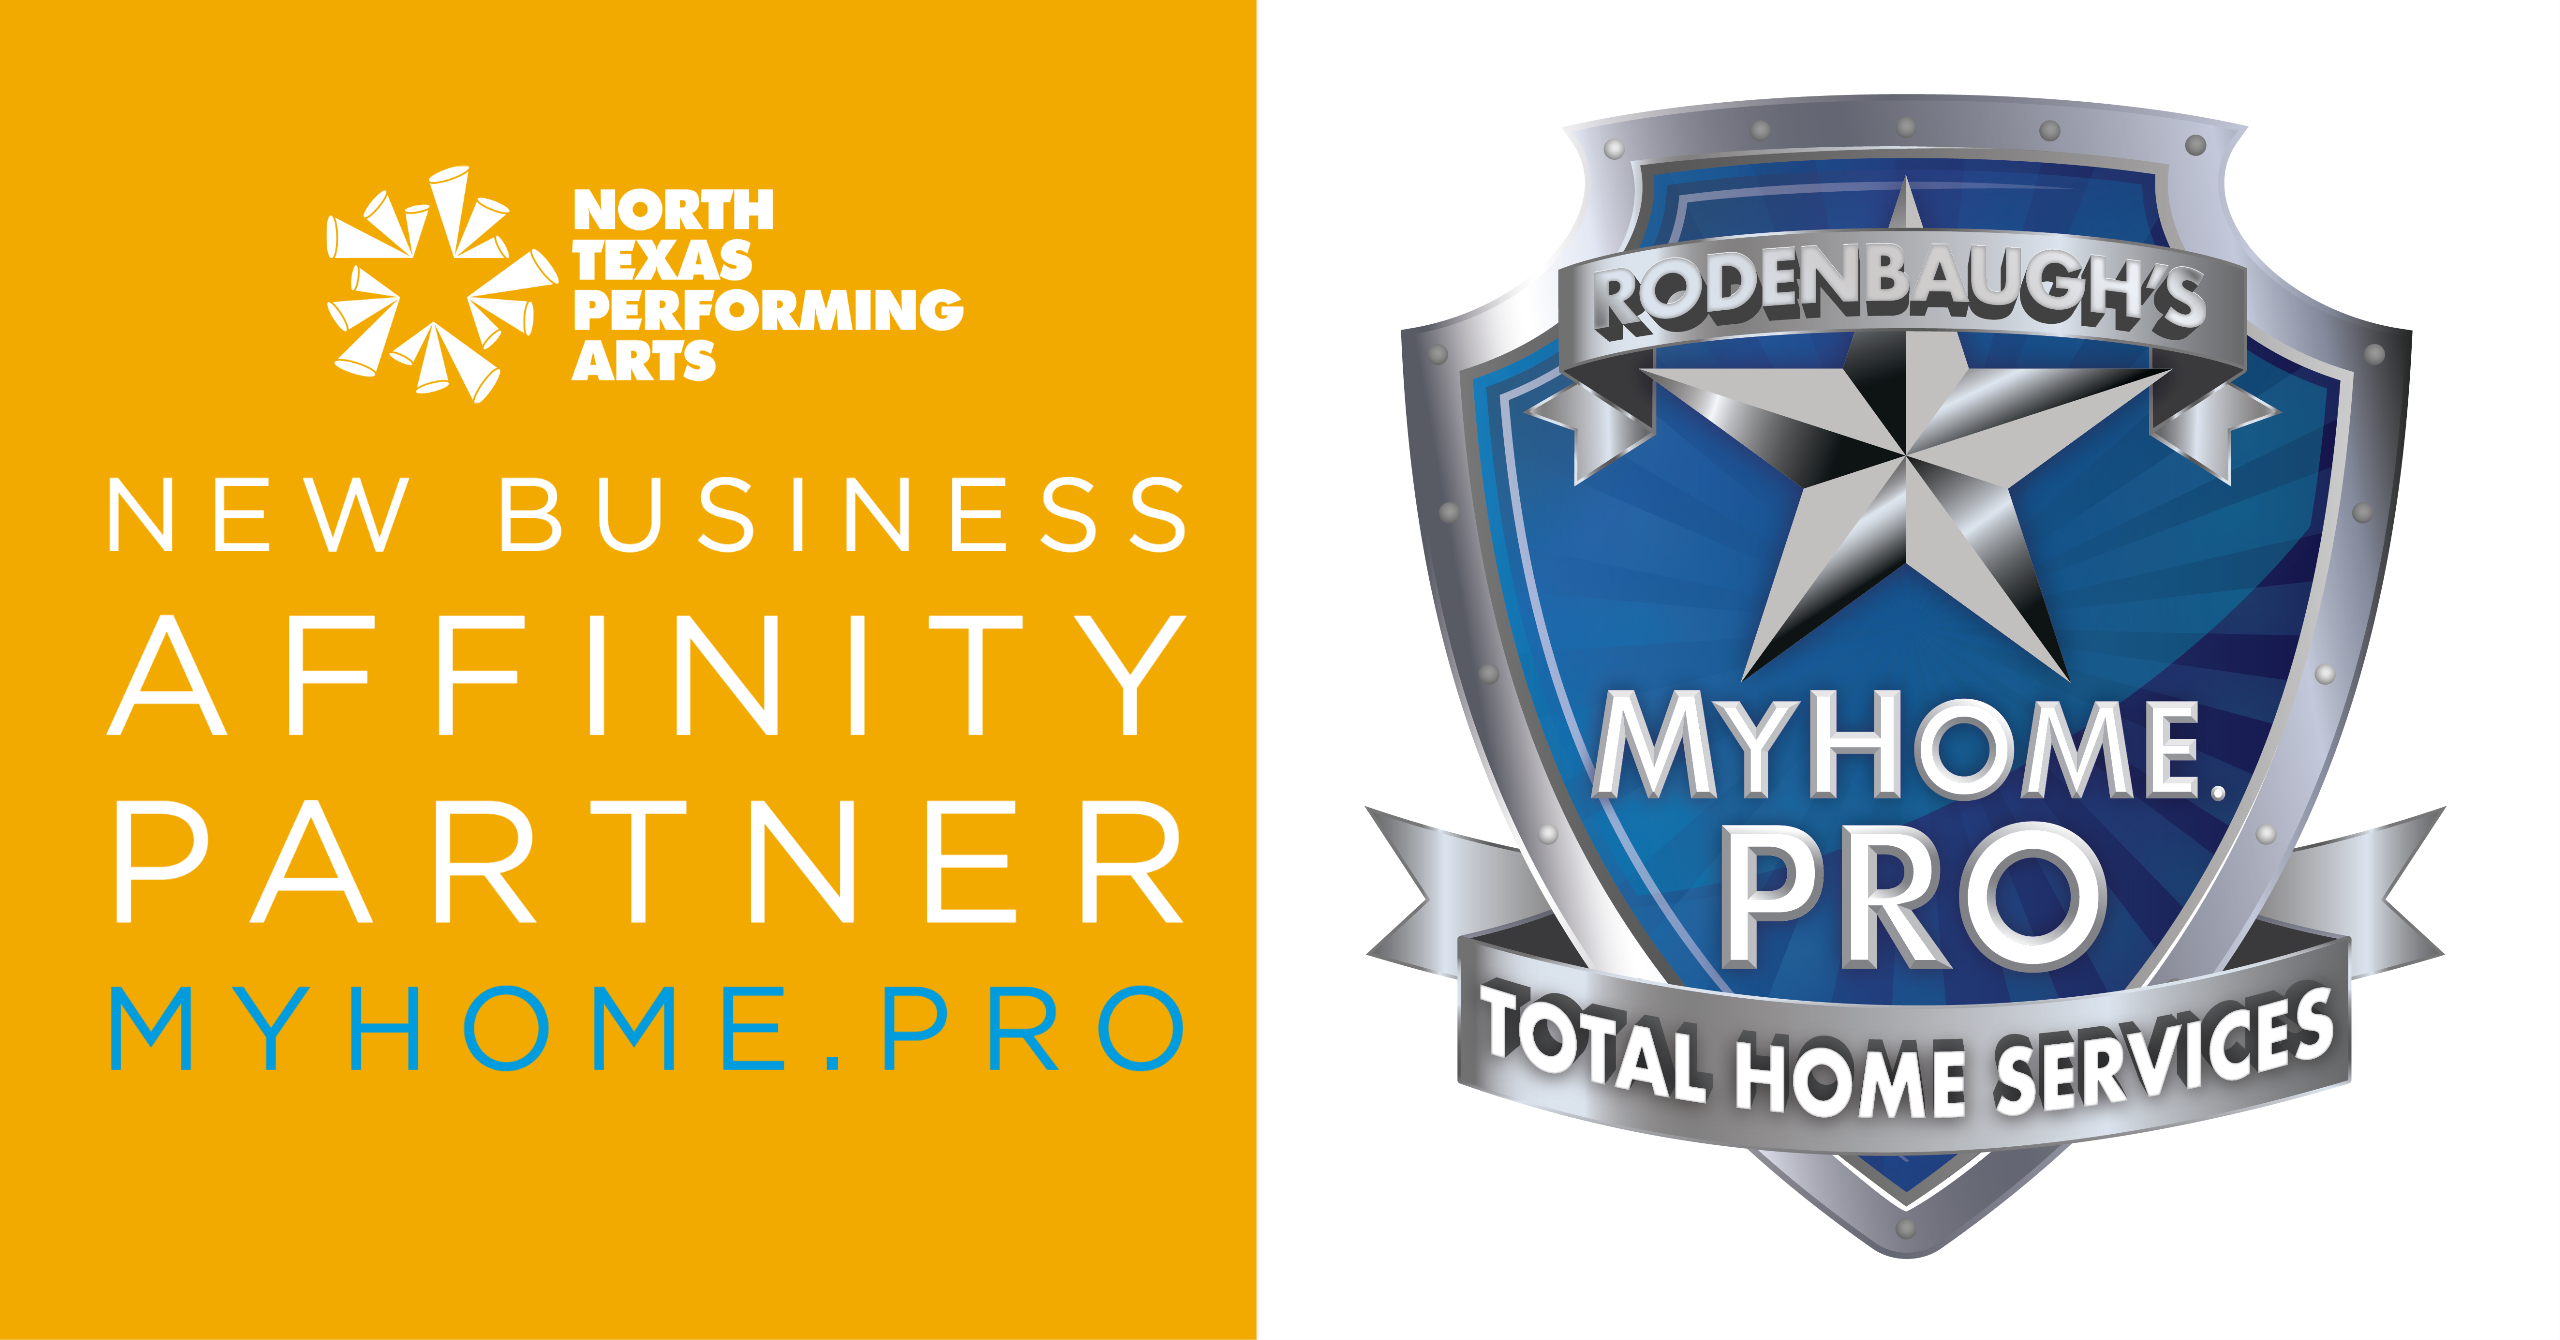 NTPA Announces Partnership with MyHome.Pro